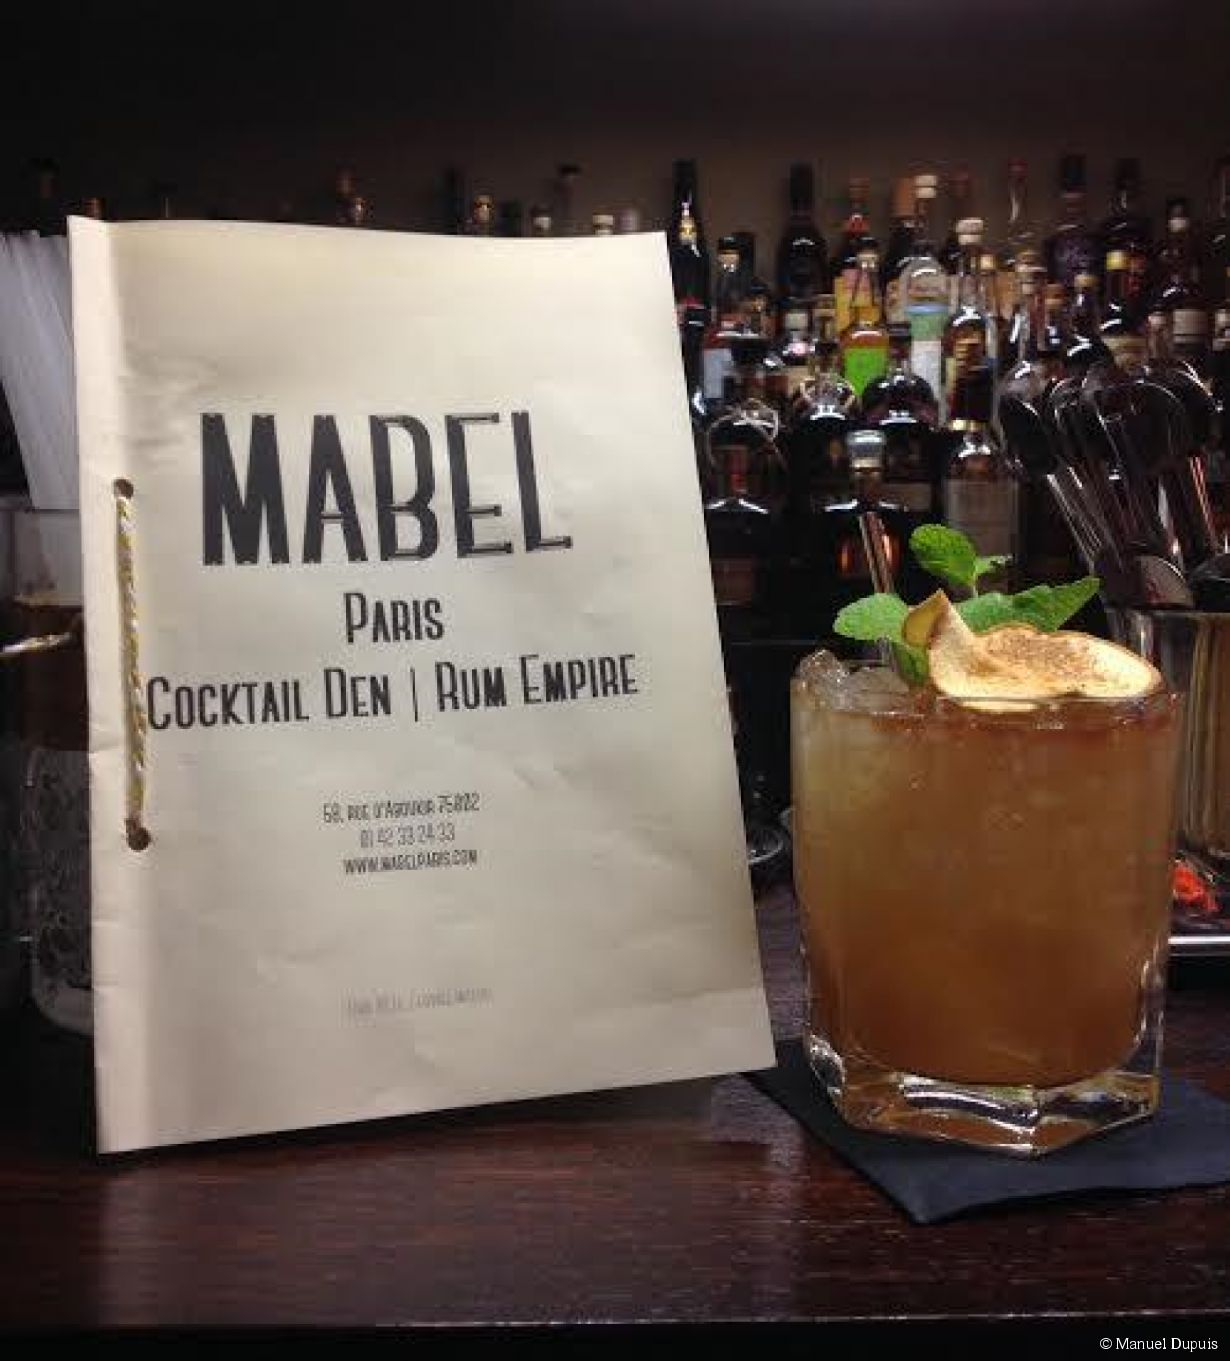 Mabel, 58 Rue d'Aboukir, 75002 Paris